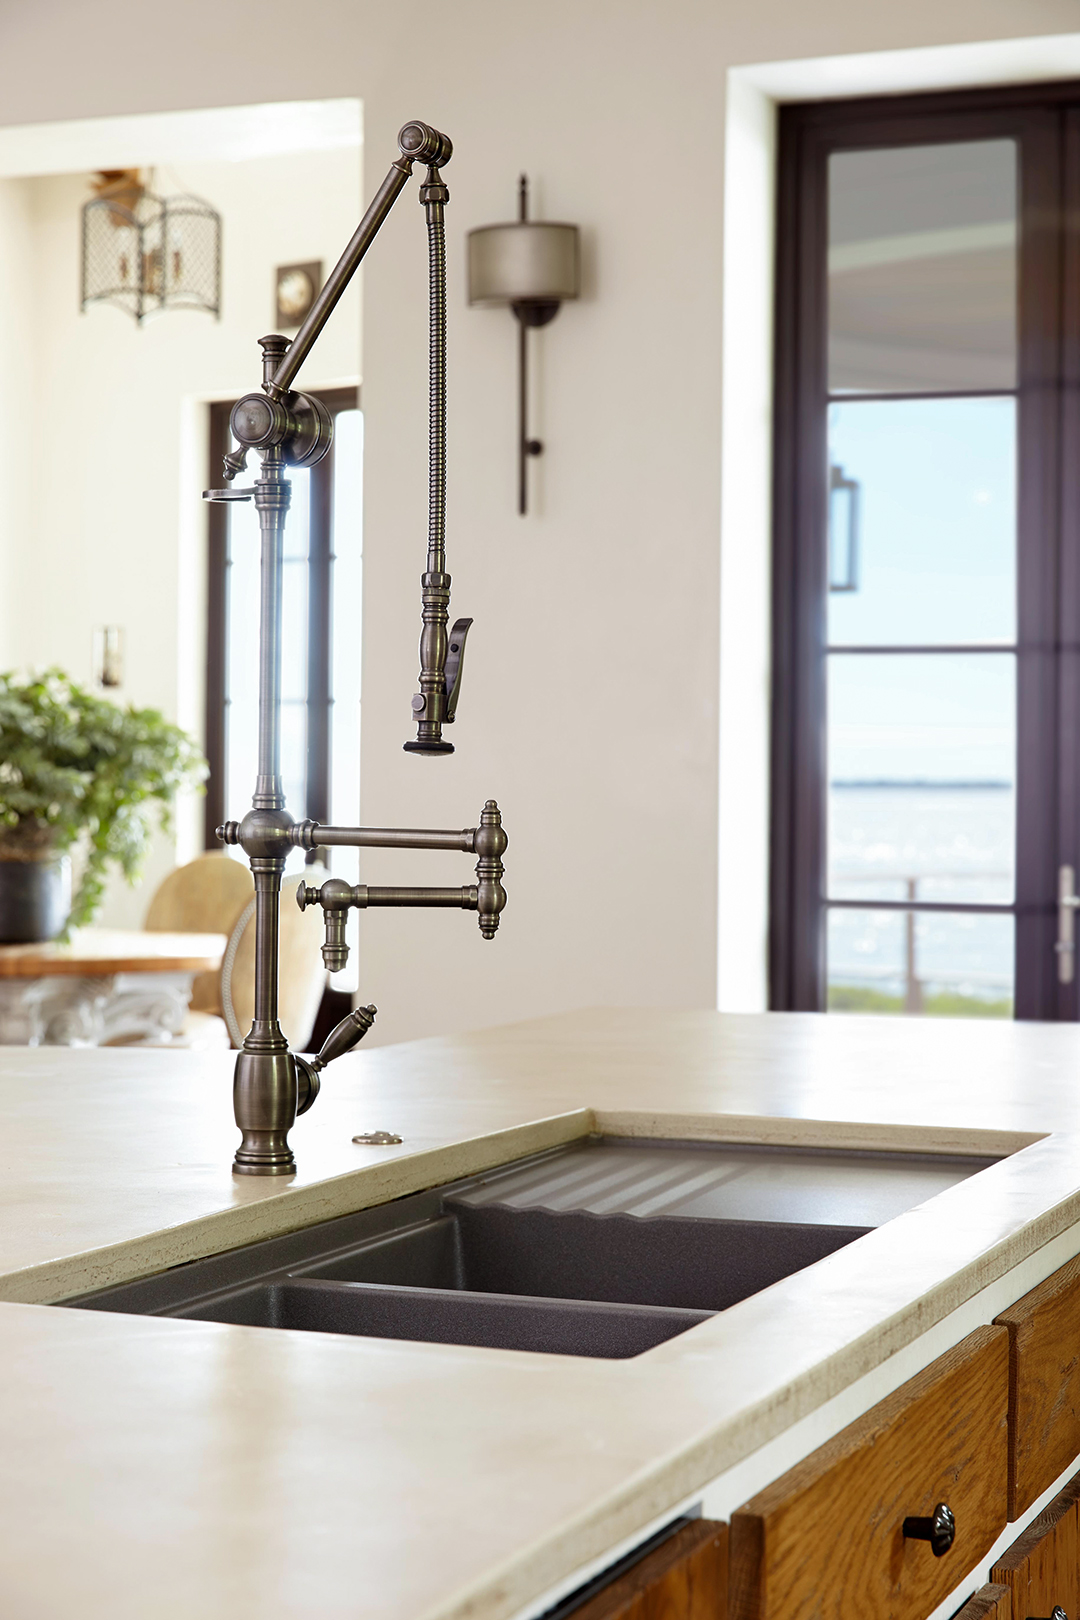 kitchen island built in sink with tall faucet and pasta rack